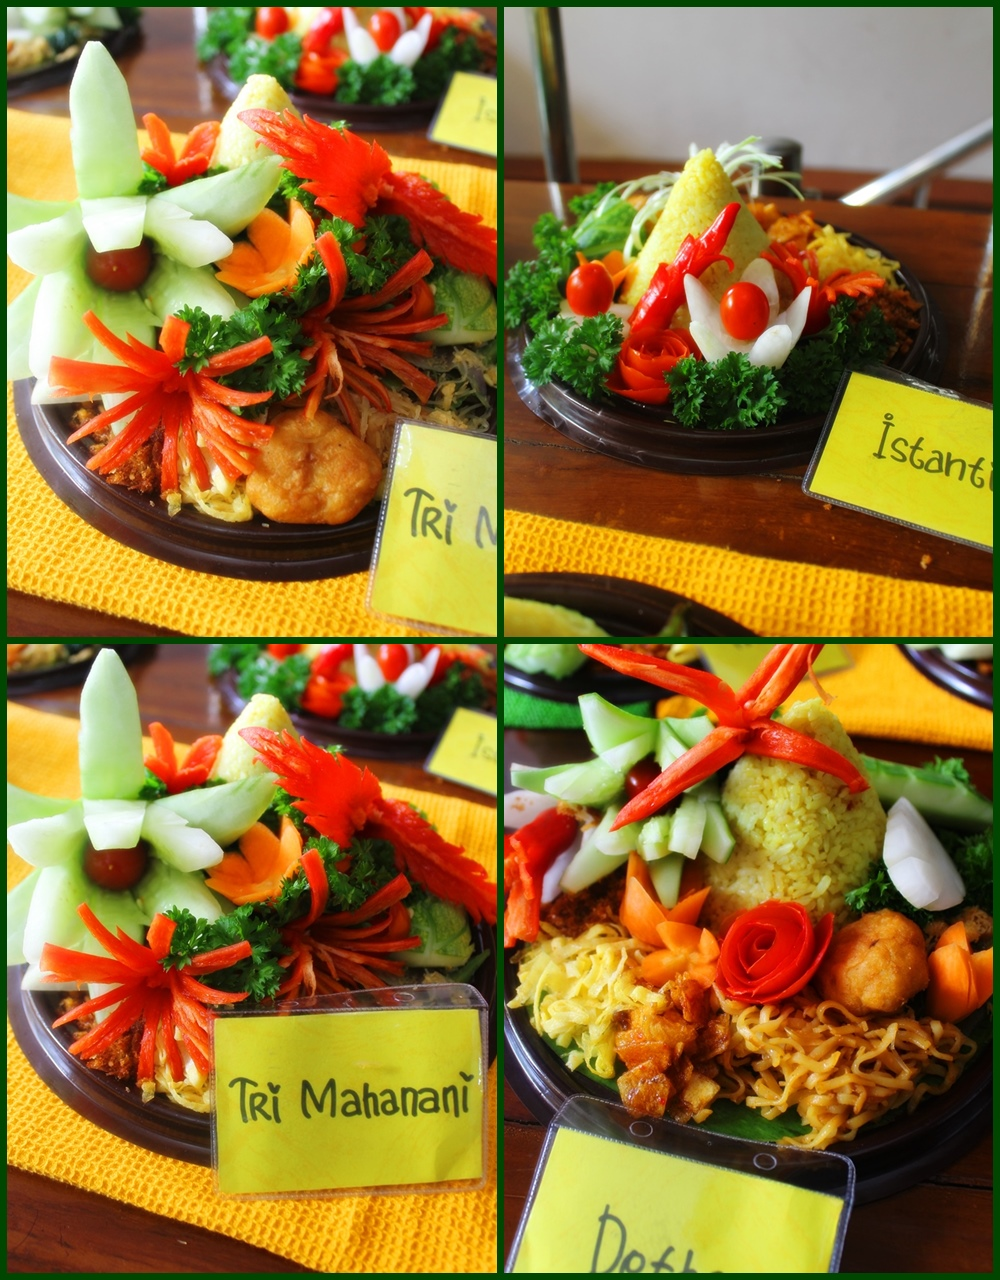 NCC Solo Latbar Vegetables Carving (16/8)